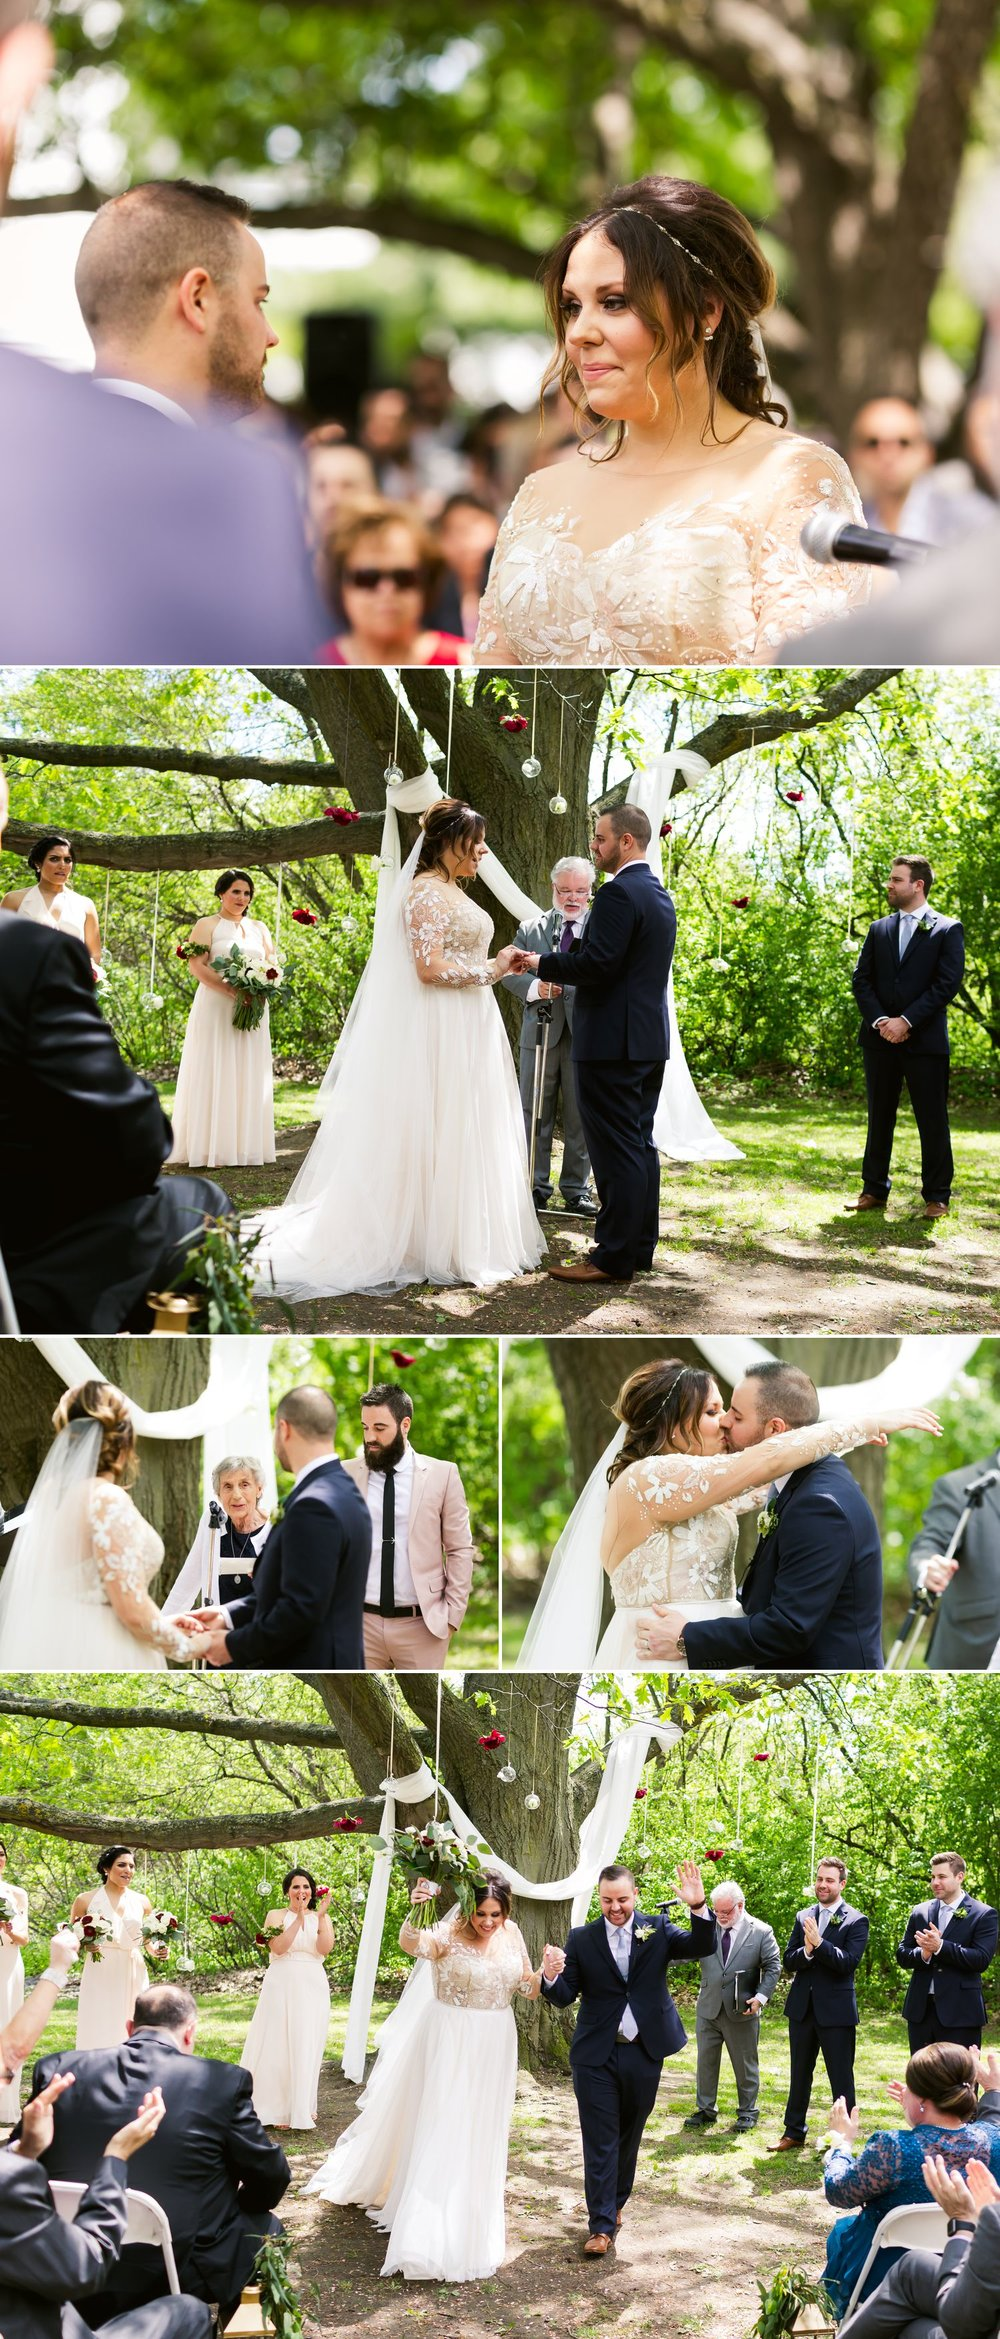 An outdoor spring wedding at Billings Estate in Ottawa